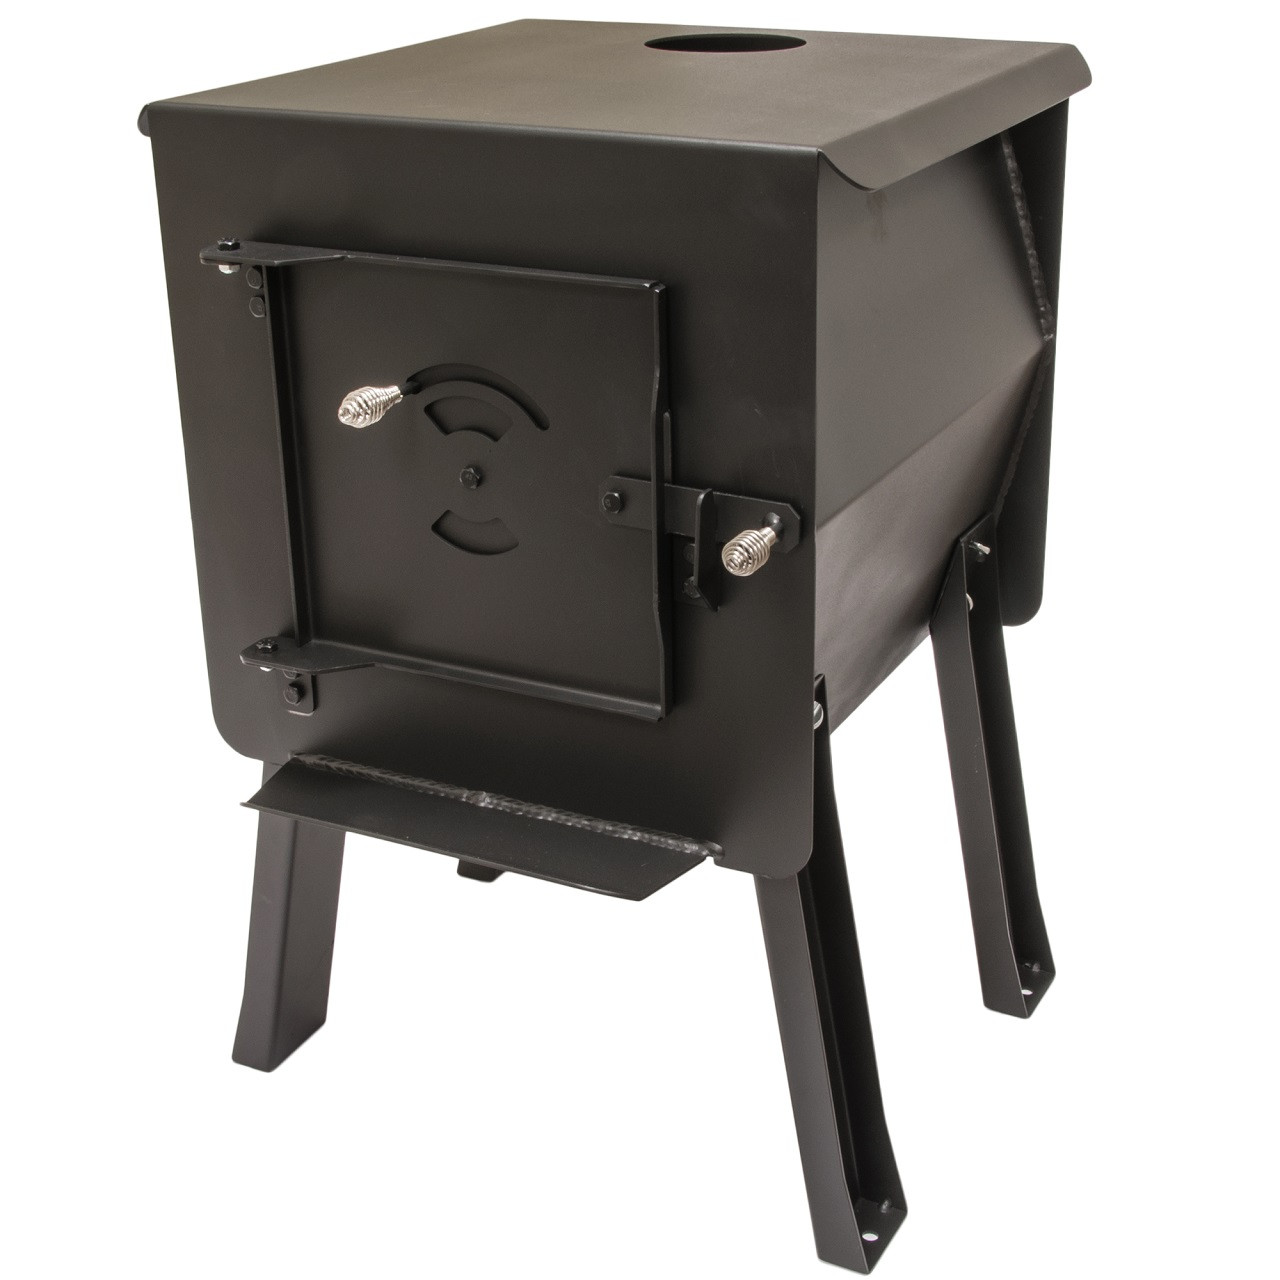 Black Bear Portable Camping Wood Stove by England's Stove Works - Model  12-CSM - Cub Portable Camping Wood Stove By England's Stove Works - Model